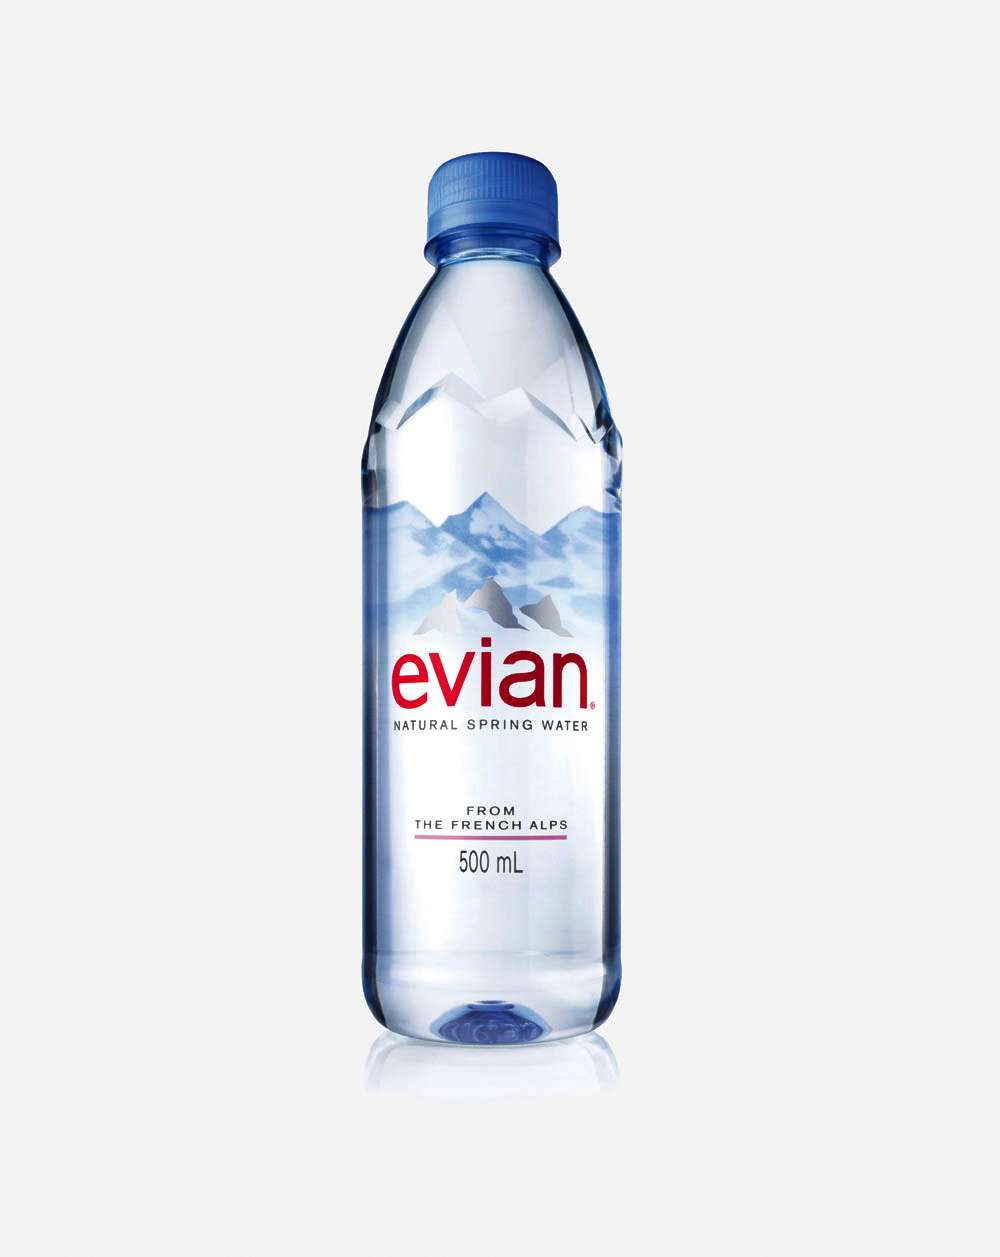 packaging-design-for-first-class-water-bottles